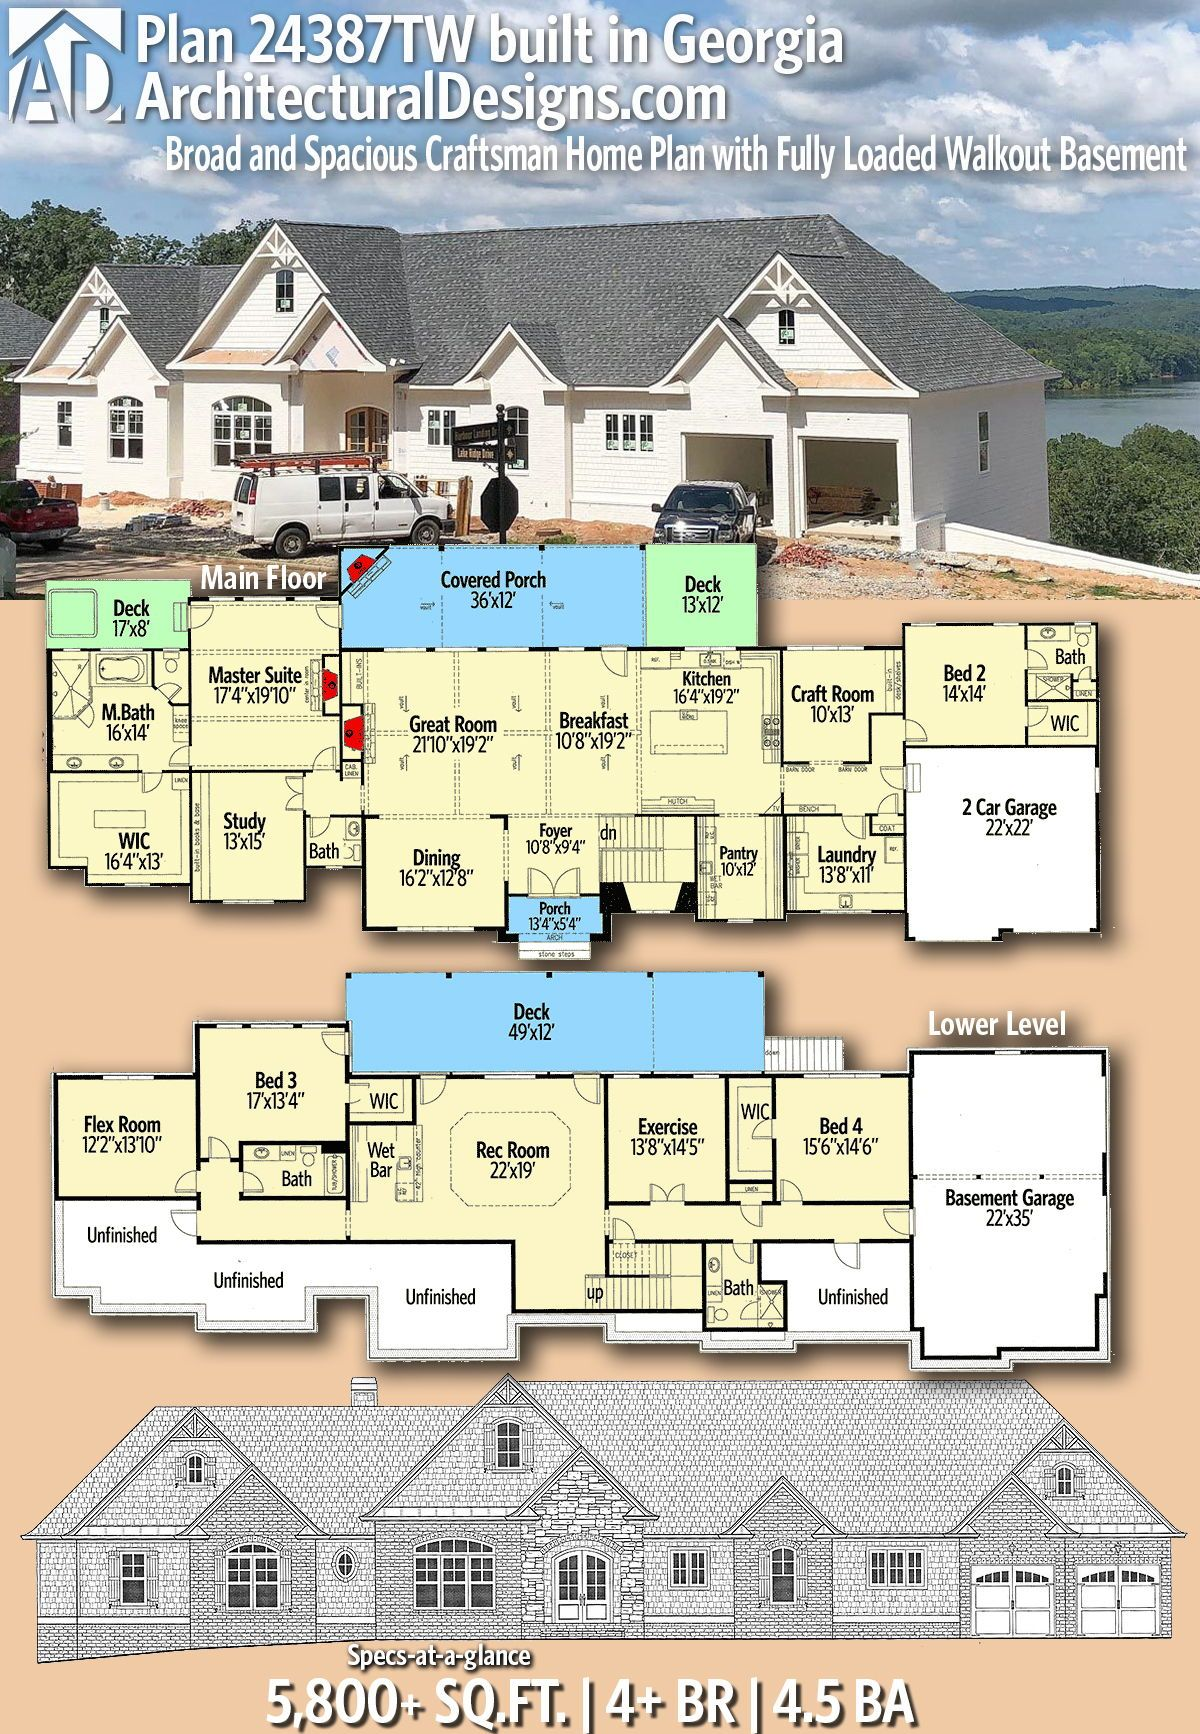 Plan 24387tw Broad And Spacious Craftsman Home Plan With Fully Loaded Walkout Basement Architectural Design House Plans Craftsman House Plans House Plans